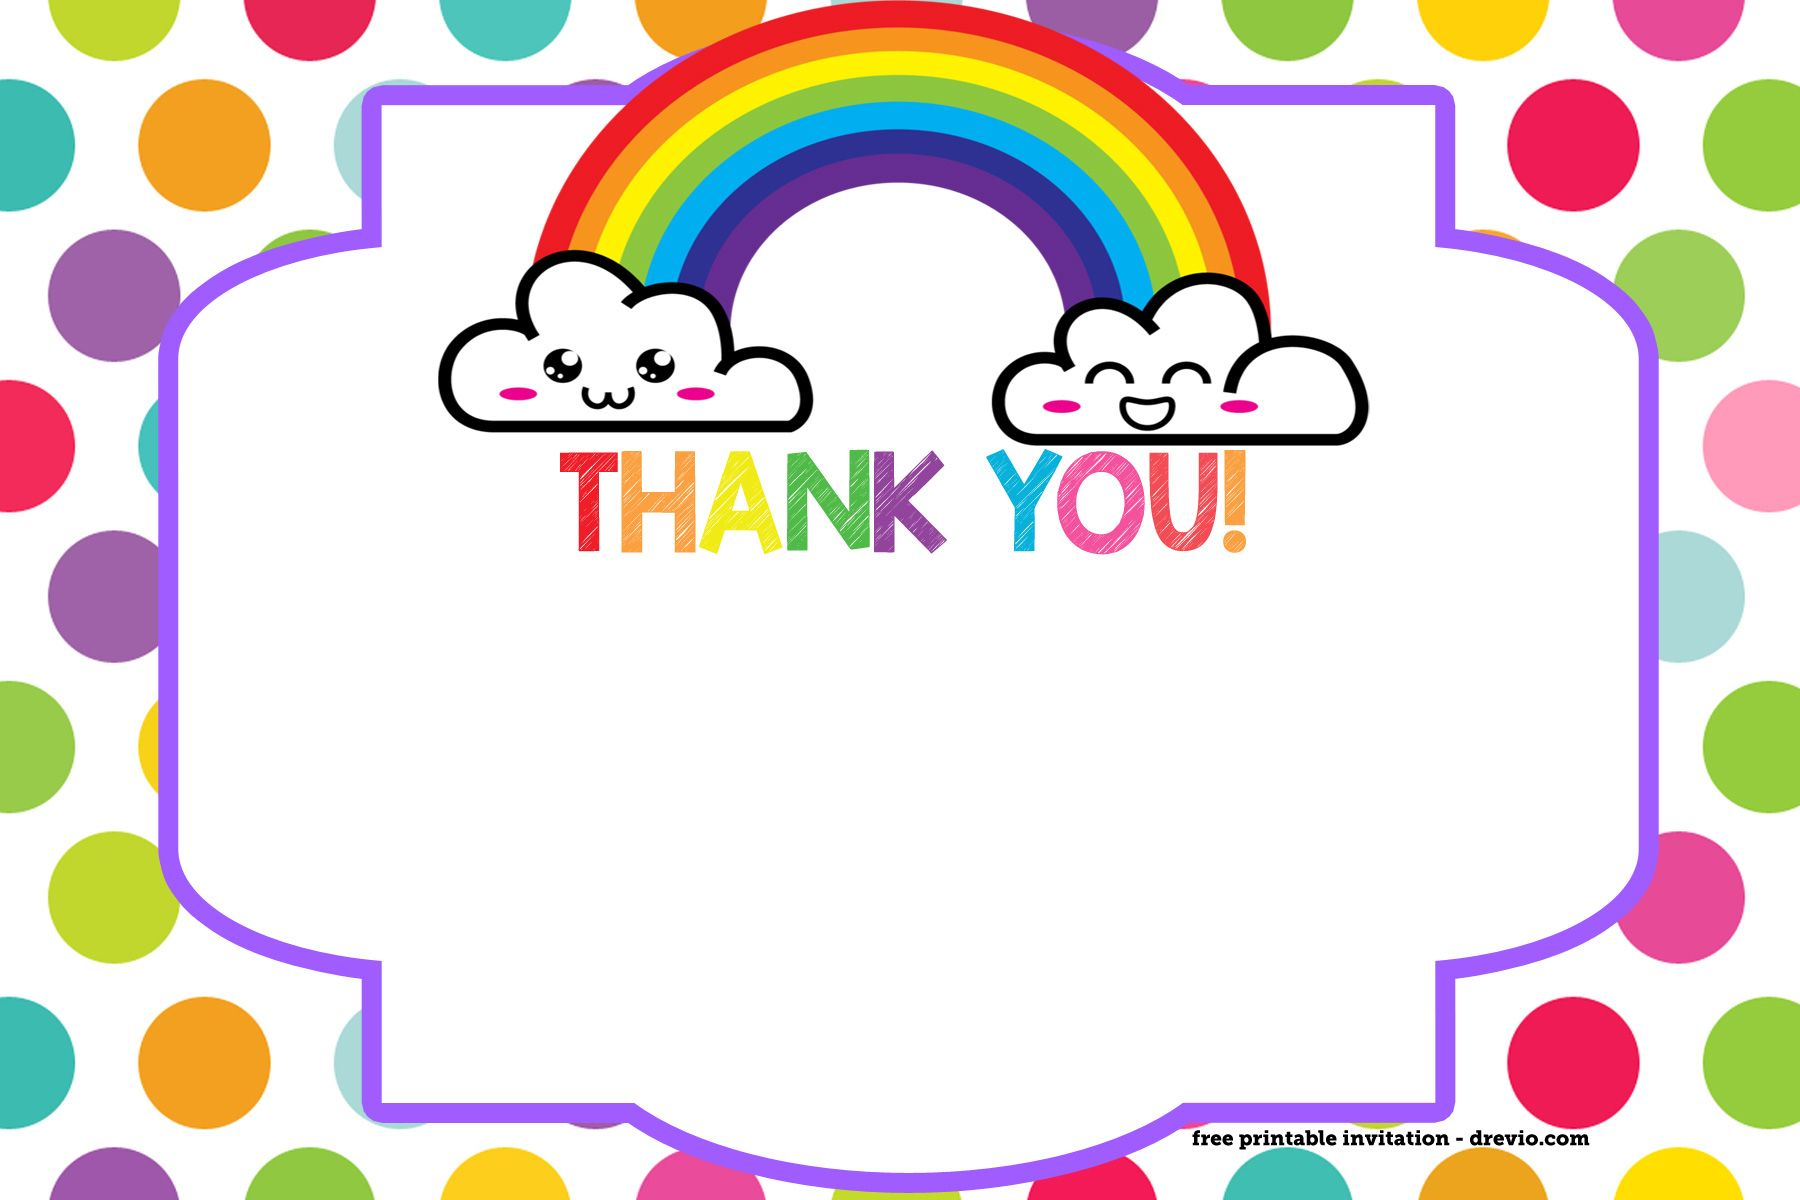 free printable rainbow invitation template thank you card free